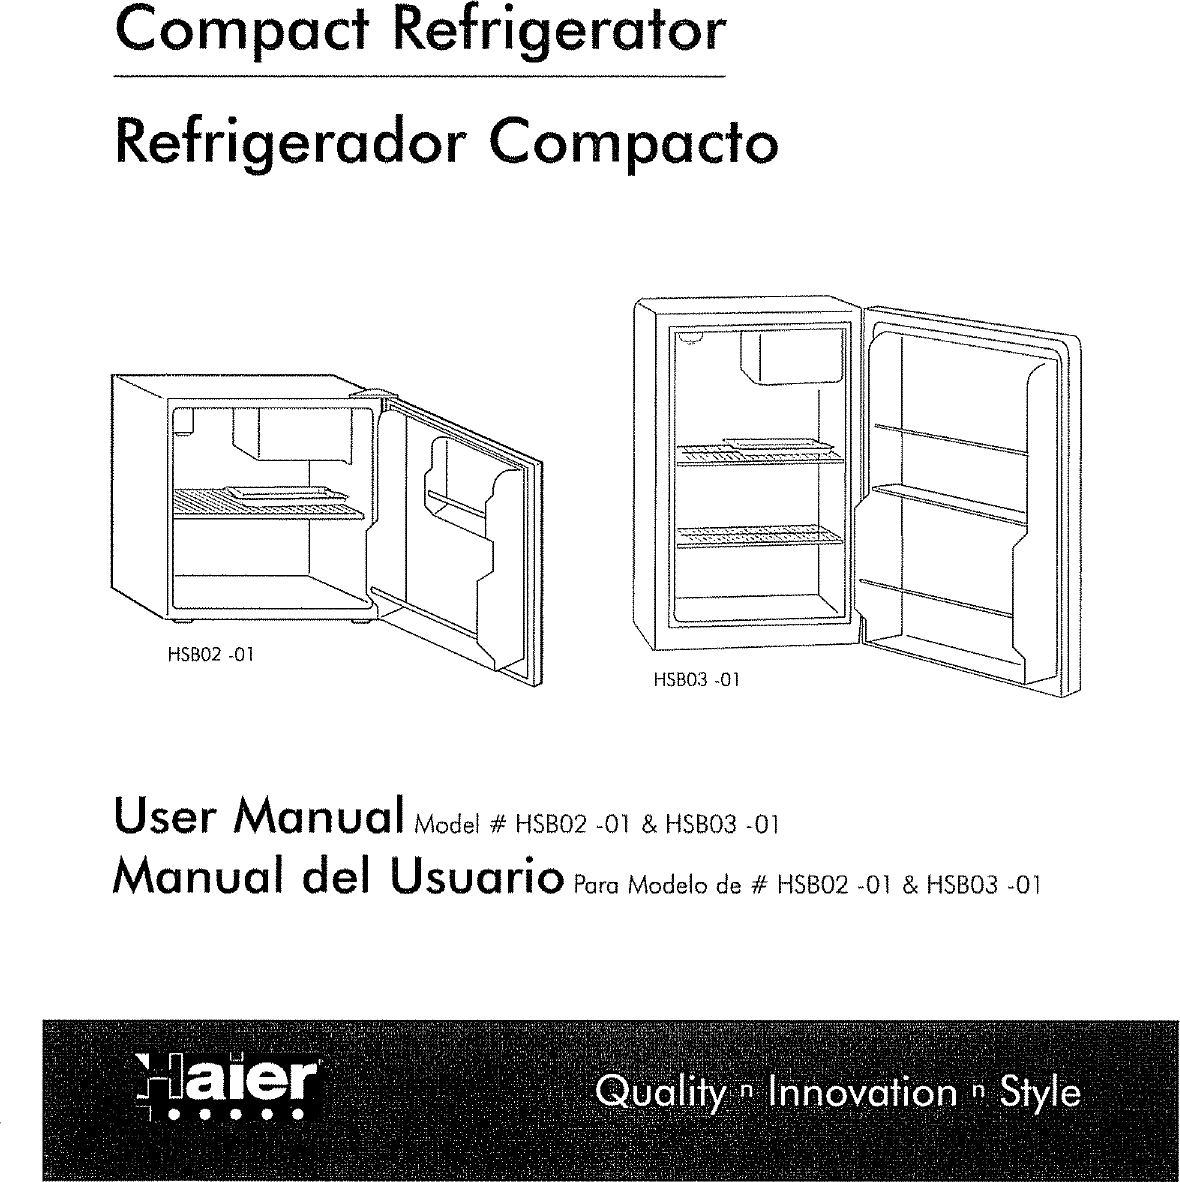 HAIER Refrigerator Compact Manual L0704323 on